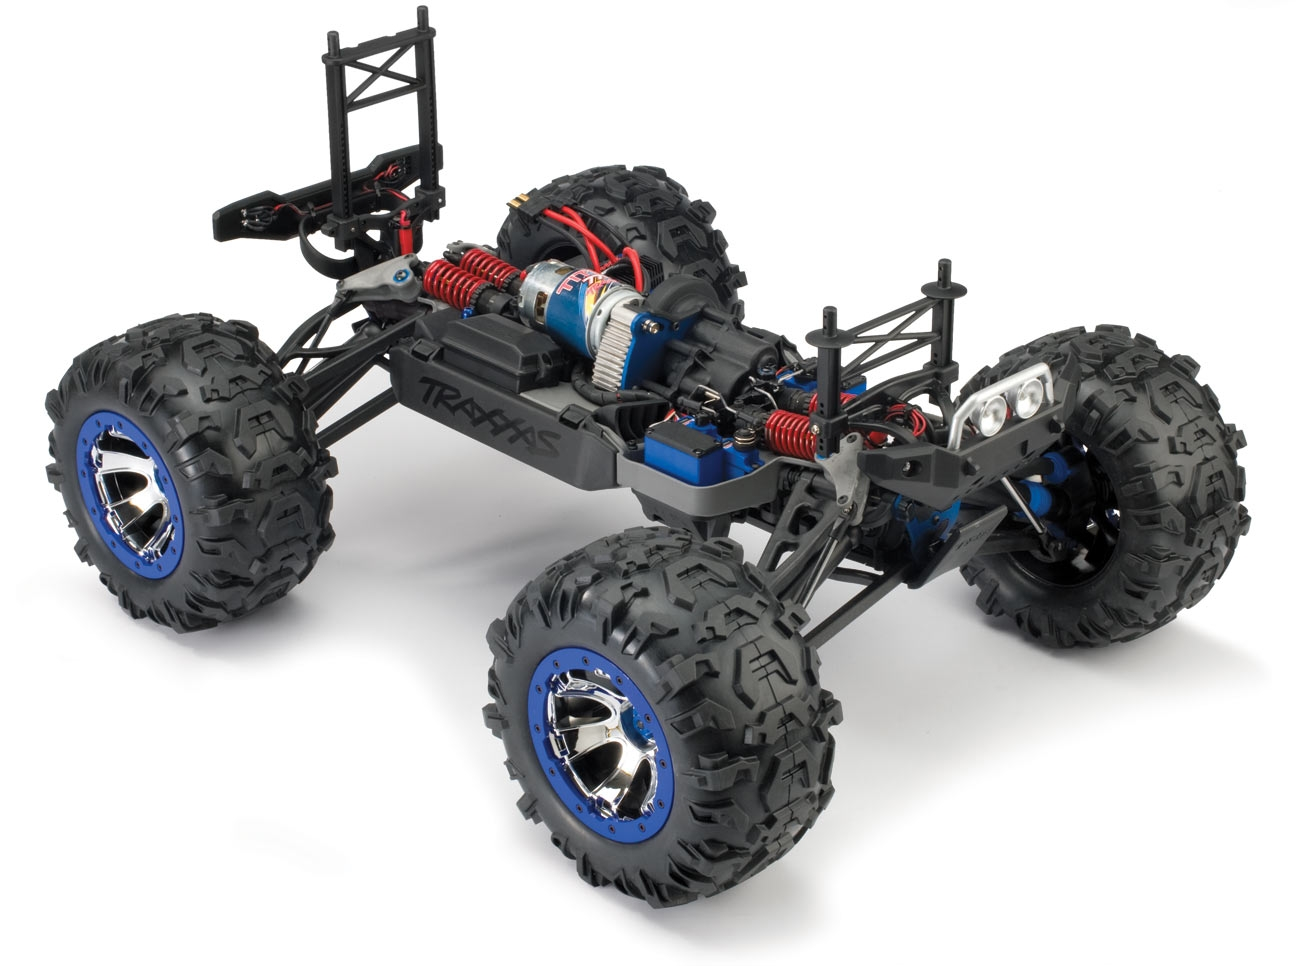 5610-3qtr-chassis.jpg